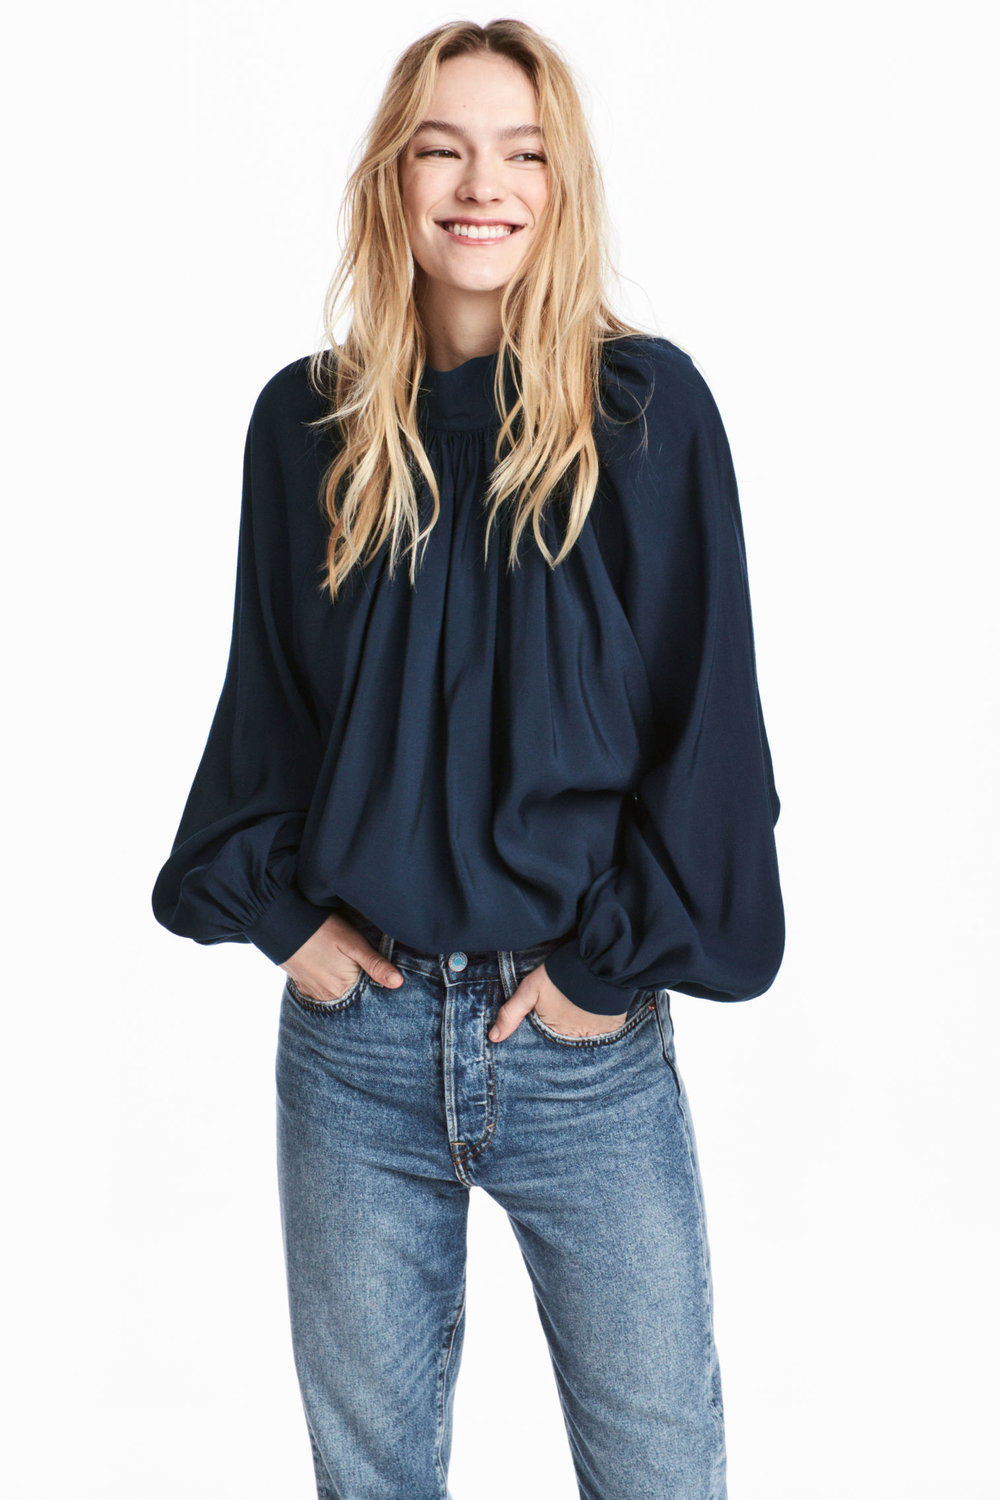 Balloon Sleeved Blouse, H&M, £34.99